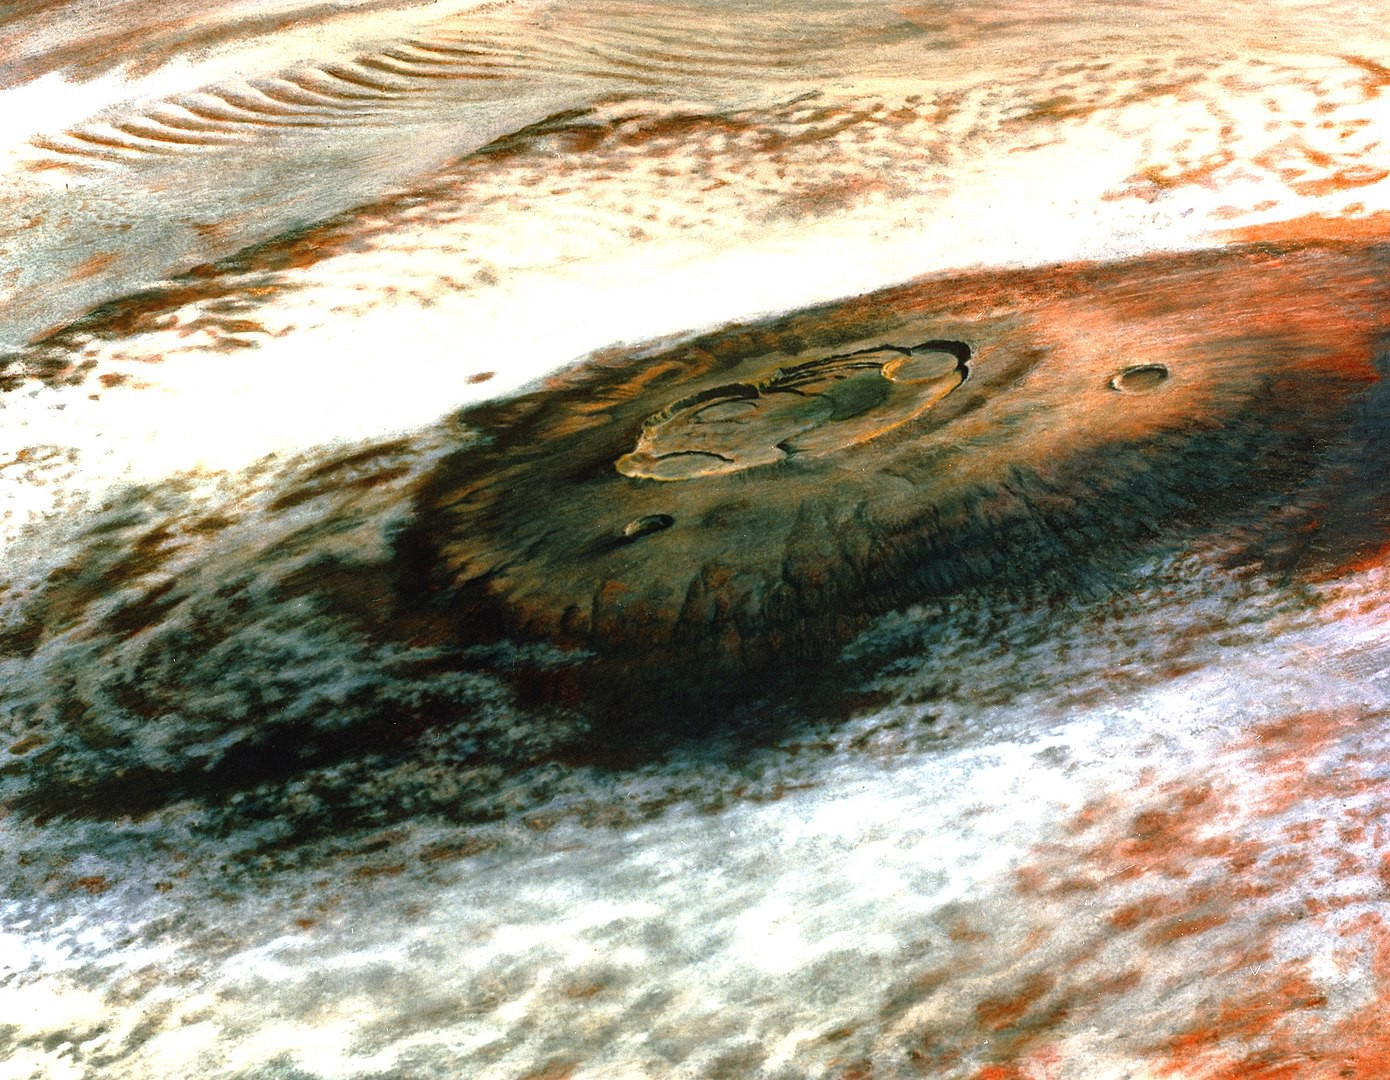 Olympus Mons, a Martian volcano, photographed by the Viking 1 spacecraft from 5000 miles away.